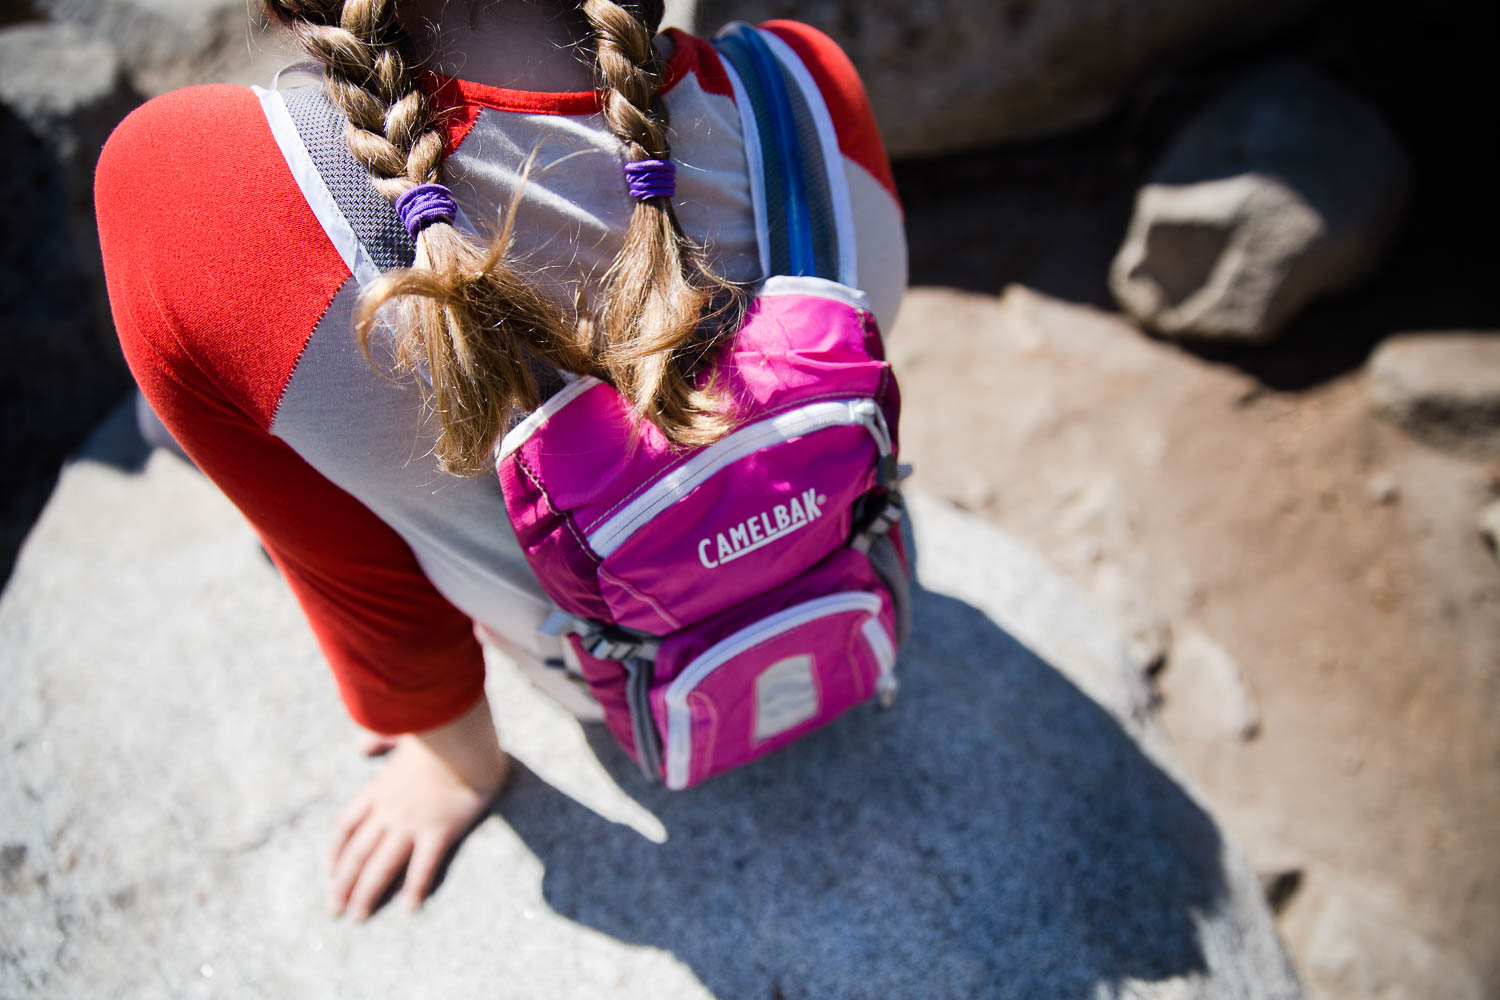 Young girl sitting on rock leaning back as she wears her Camelbak hydration backpack